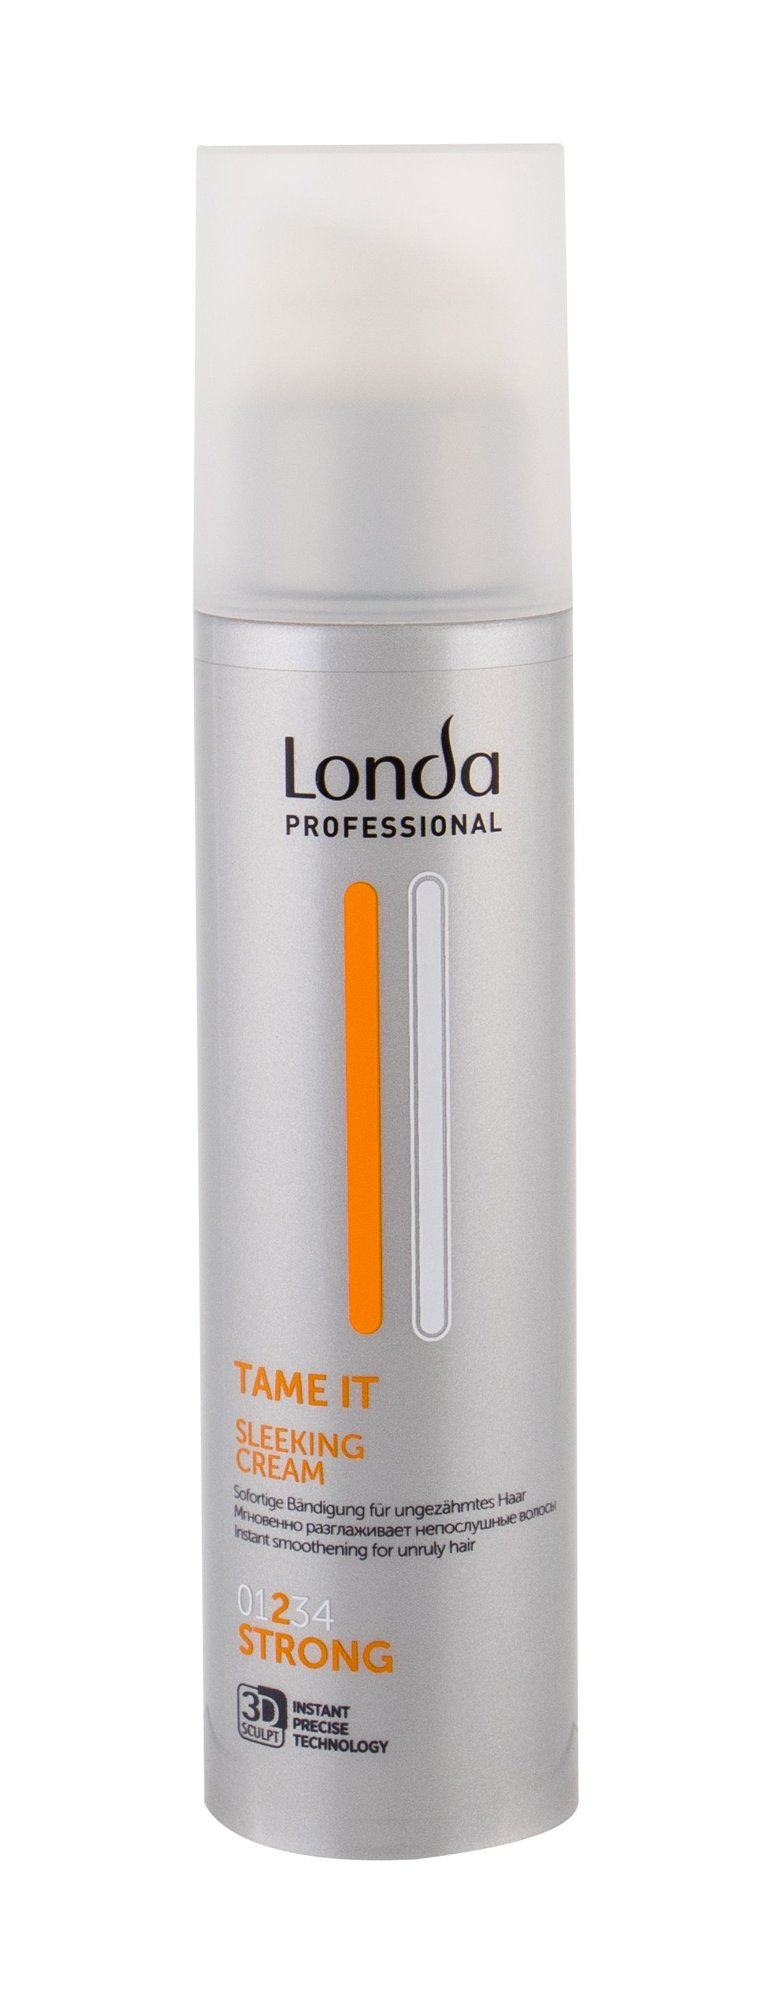 Londa Professional Tame It Cosmetic 200ml  Sleeking Cream